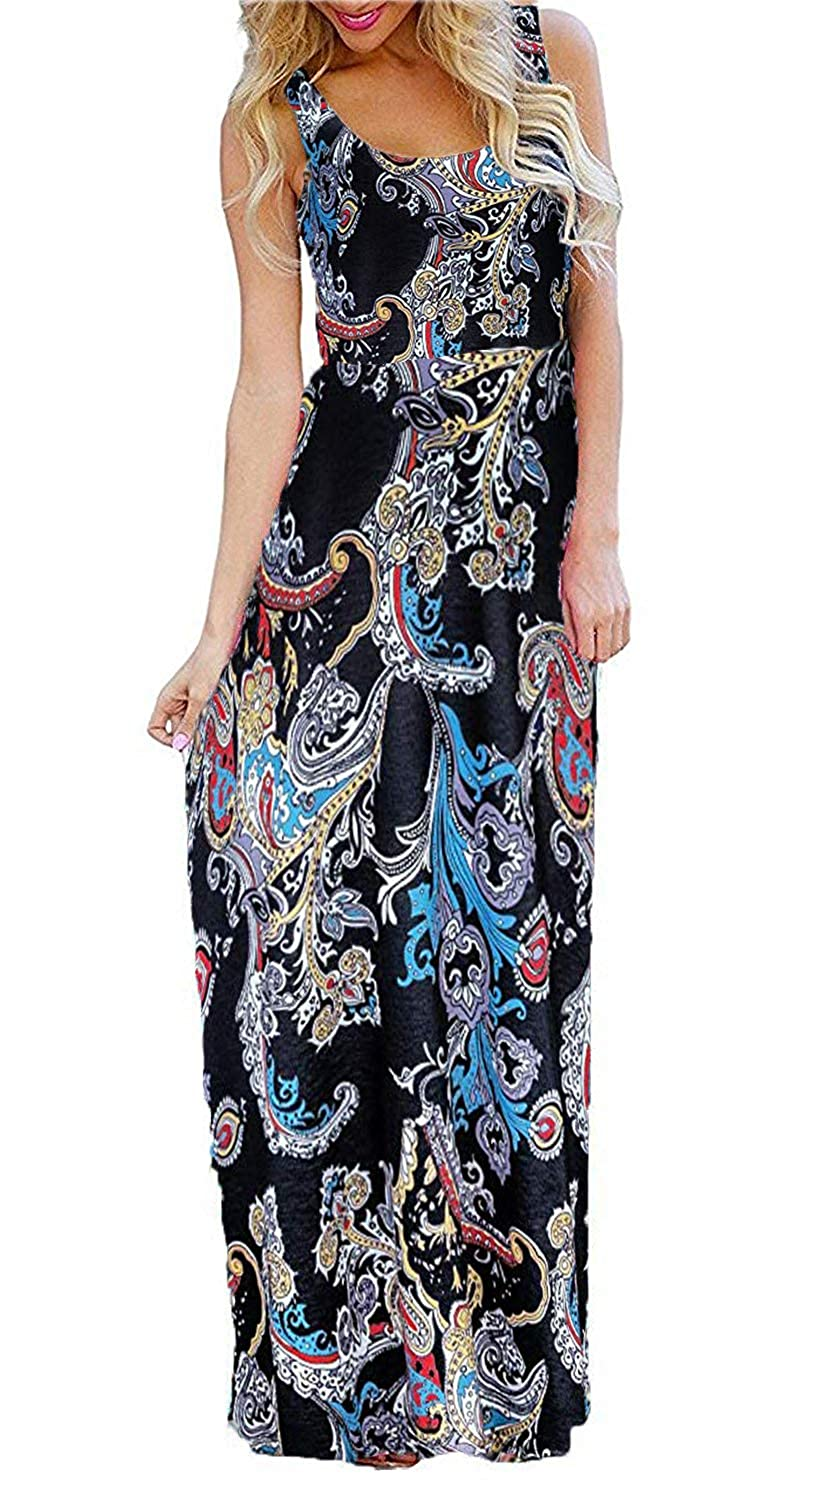 056df5a58263 BLUETIME Women s Floral Boho Flowy Summer Sleeveless Tank Maxi Long Party  Dresses Beach Sundress at Amazon Women s Clothing store